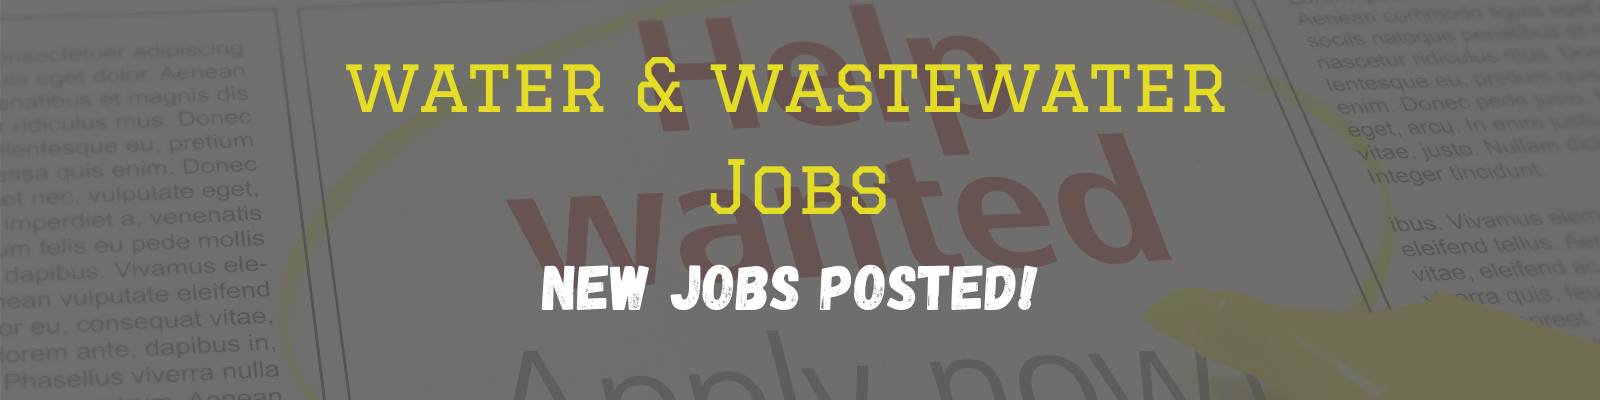 New Jobs posted